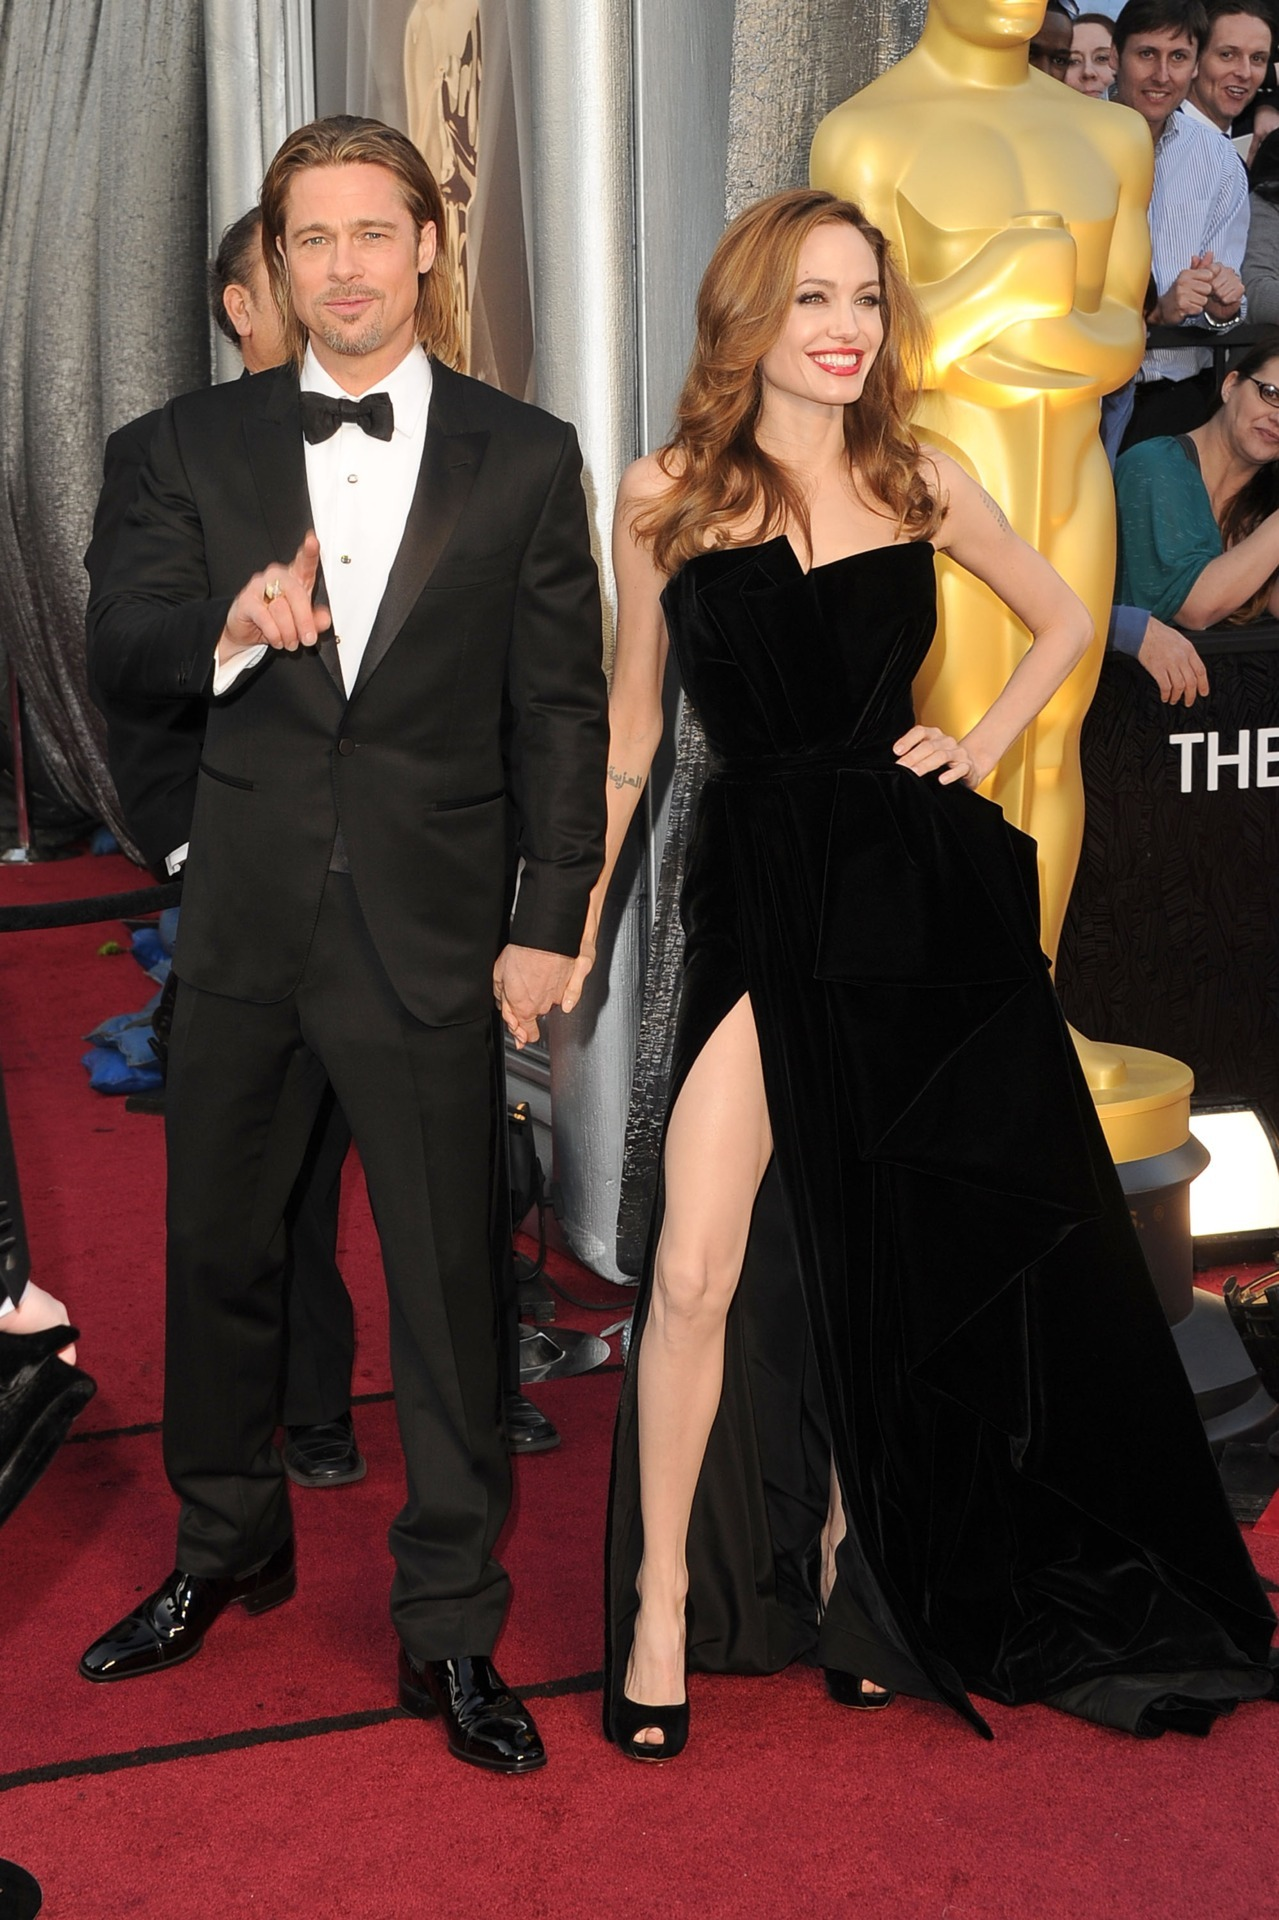 bohemea:  suicideblonde:  Brad Pitt and Angelina Jolie at the 2012 Oscars, February 26th OHMYGODOHMYGODOHMYGOD I CAN BARELY FORM COHERANT THOUGHT RIGHT NOW.  YOU KNOW THEY WERE LATE CUZ THEY WERE HAVING SOME LIMO SEX.    Yes.  Thank you for this beautiful moment in Oscar history.  #BRBSHAKINGANDCRYING  I'M SPEECHLESS! I'D SAY SOMETHING, BUT I'M SPEECHLESS!